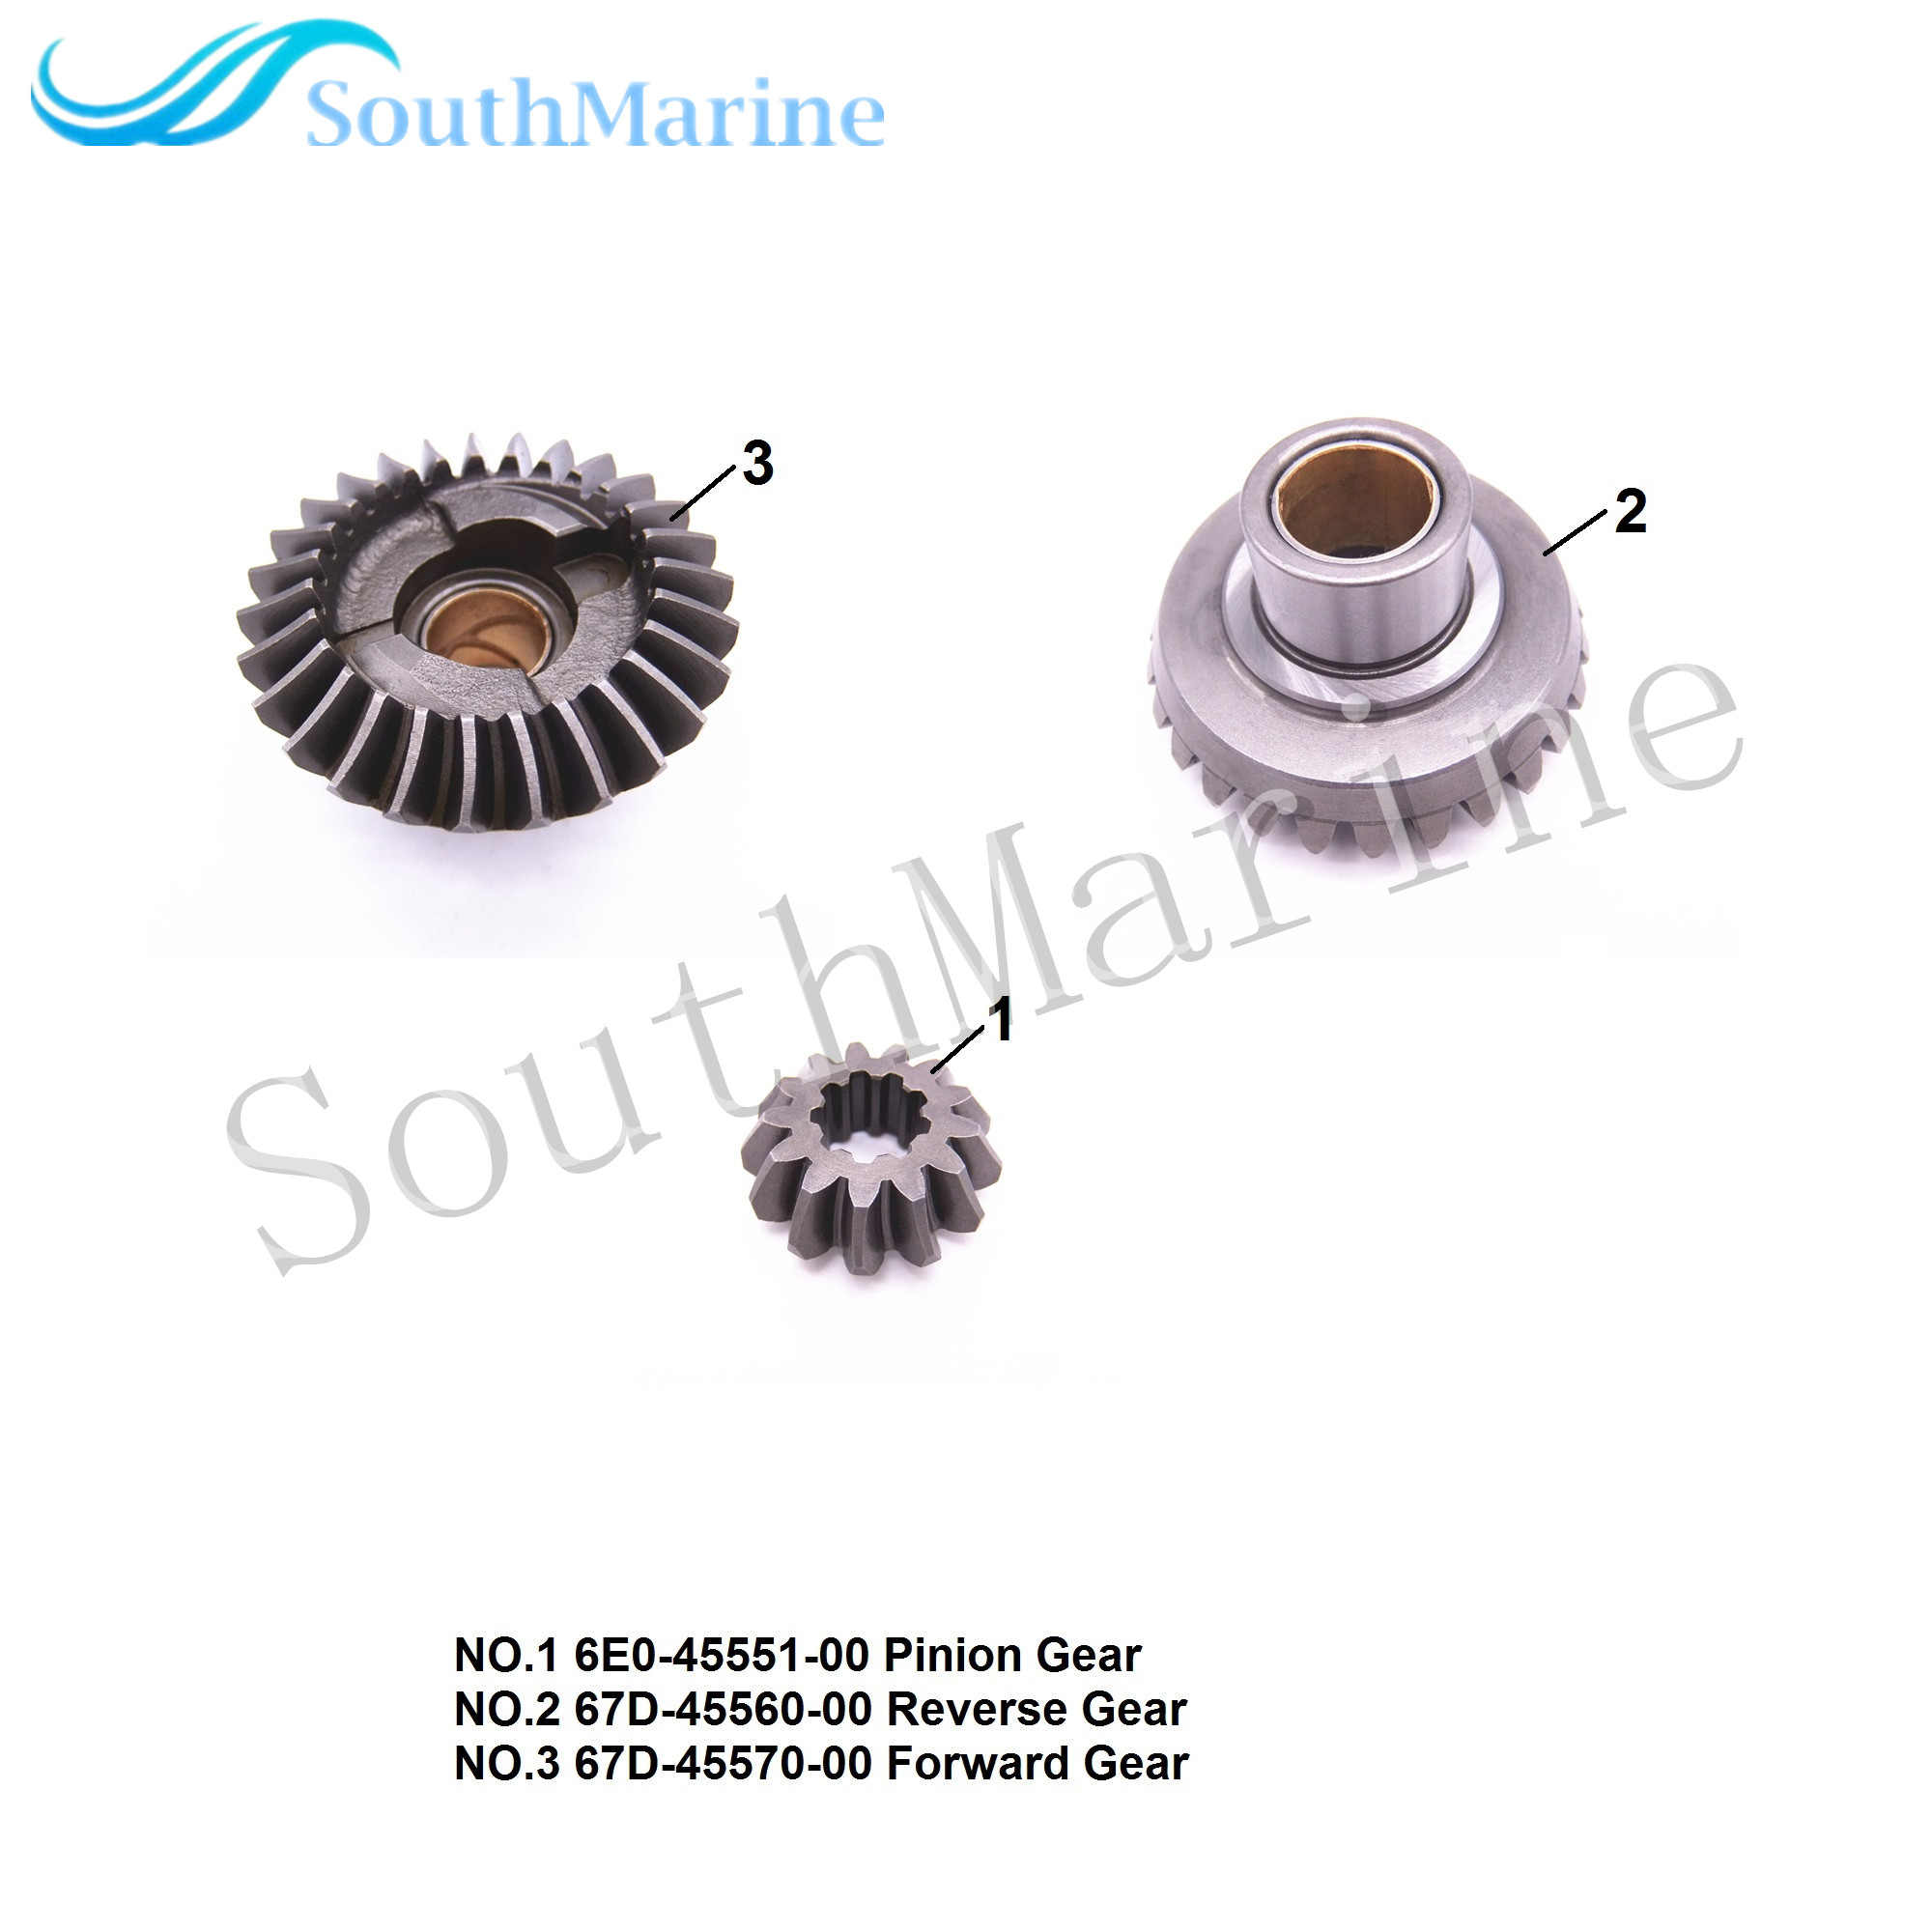 Outboard Engine 6E0-45551-00 Pinion / 67D-45560-00 Reverse / 67D-45570-00 Forward Gear for Yamaha F4 Boat MotorOutboard Engine 6E0-45551-00 Pinion / 67D-45560-00 Reverse / 67D-45570-00 Forward Gear for Yamaha F4 Boat Motor